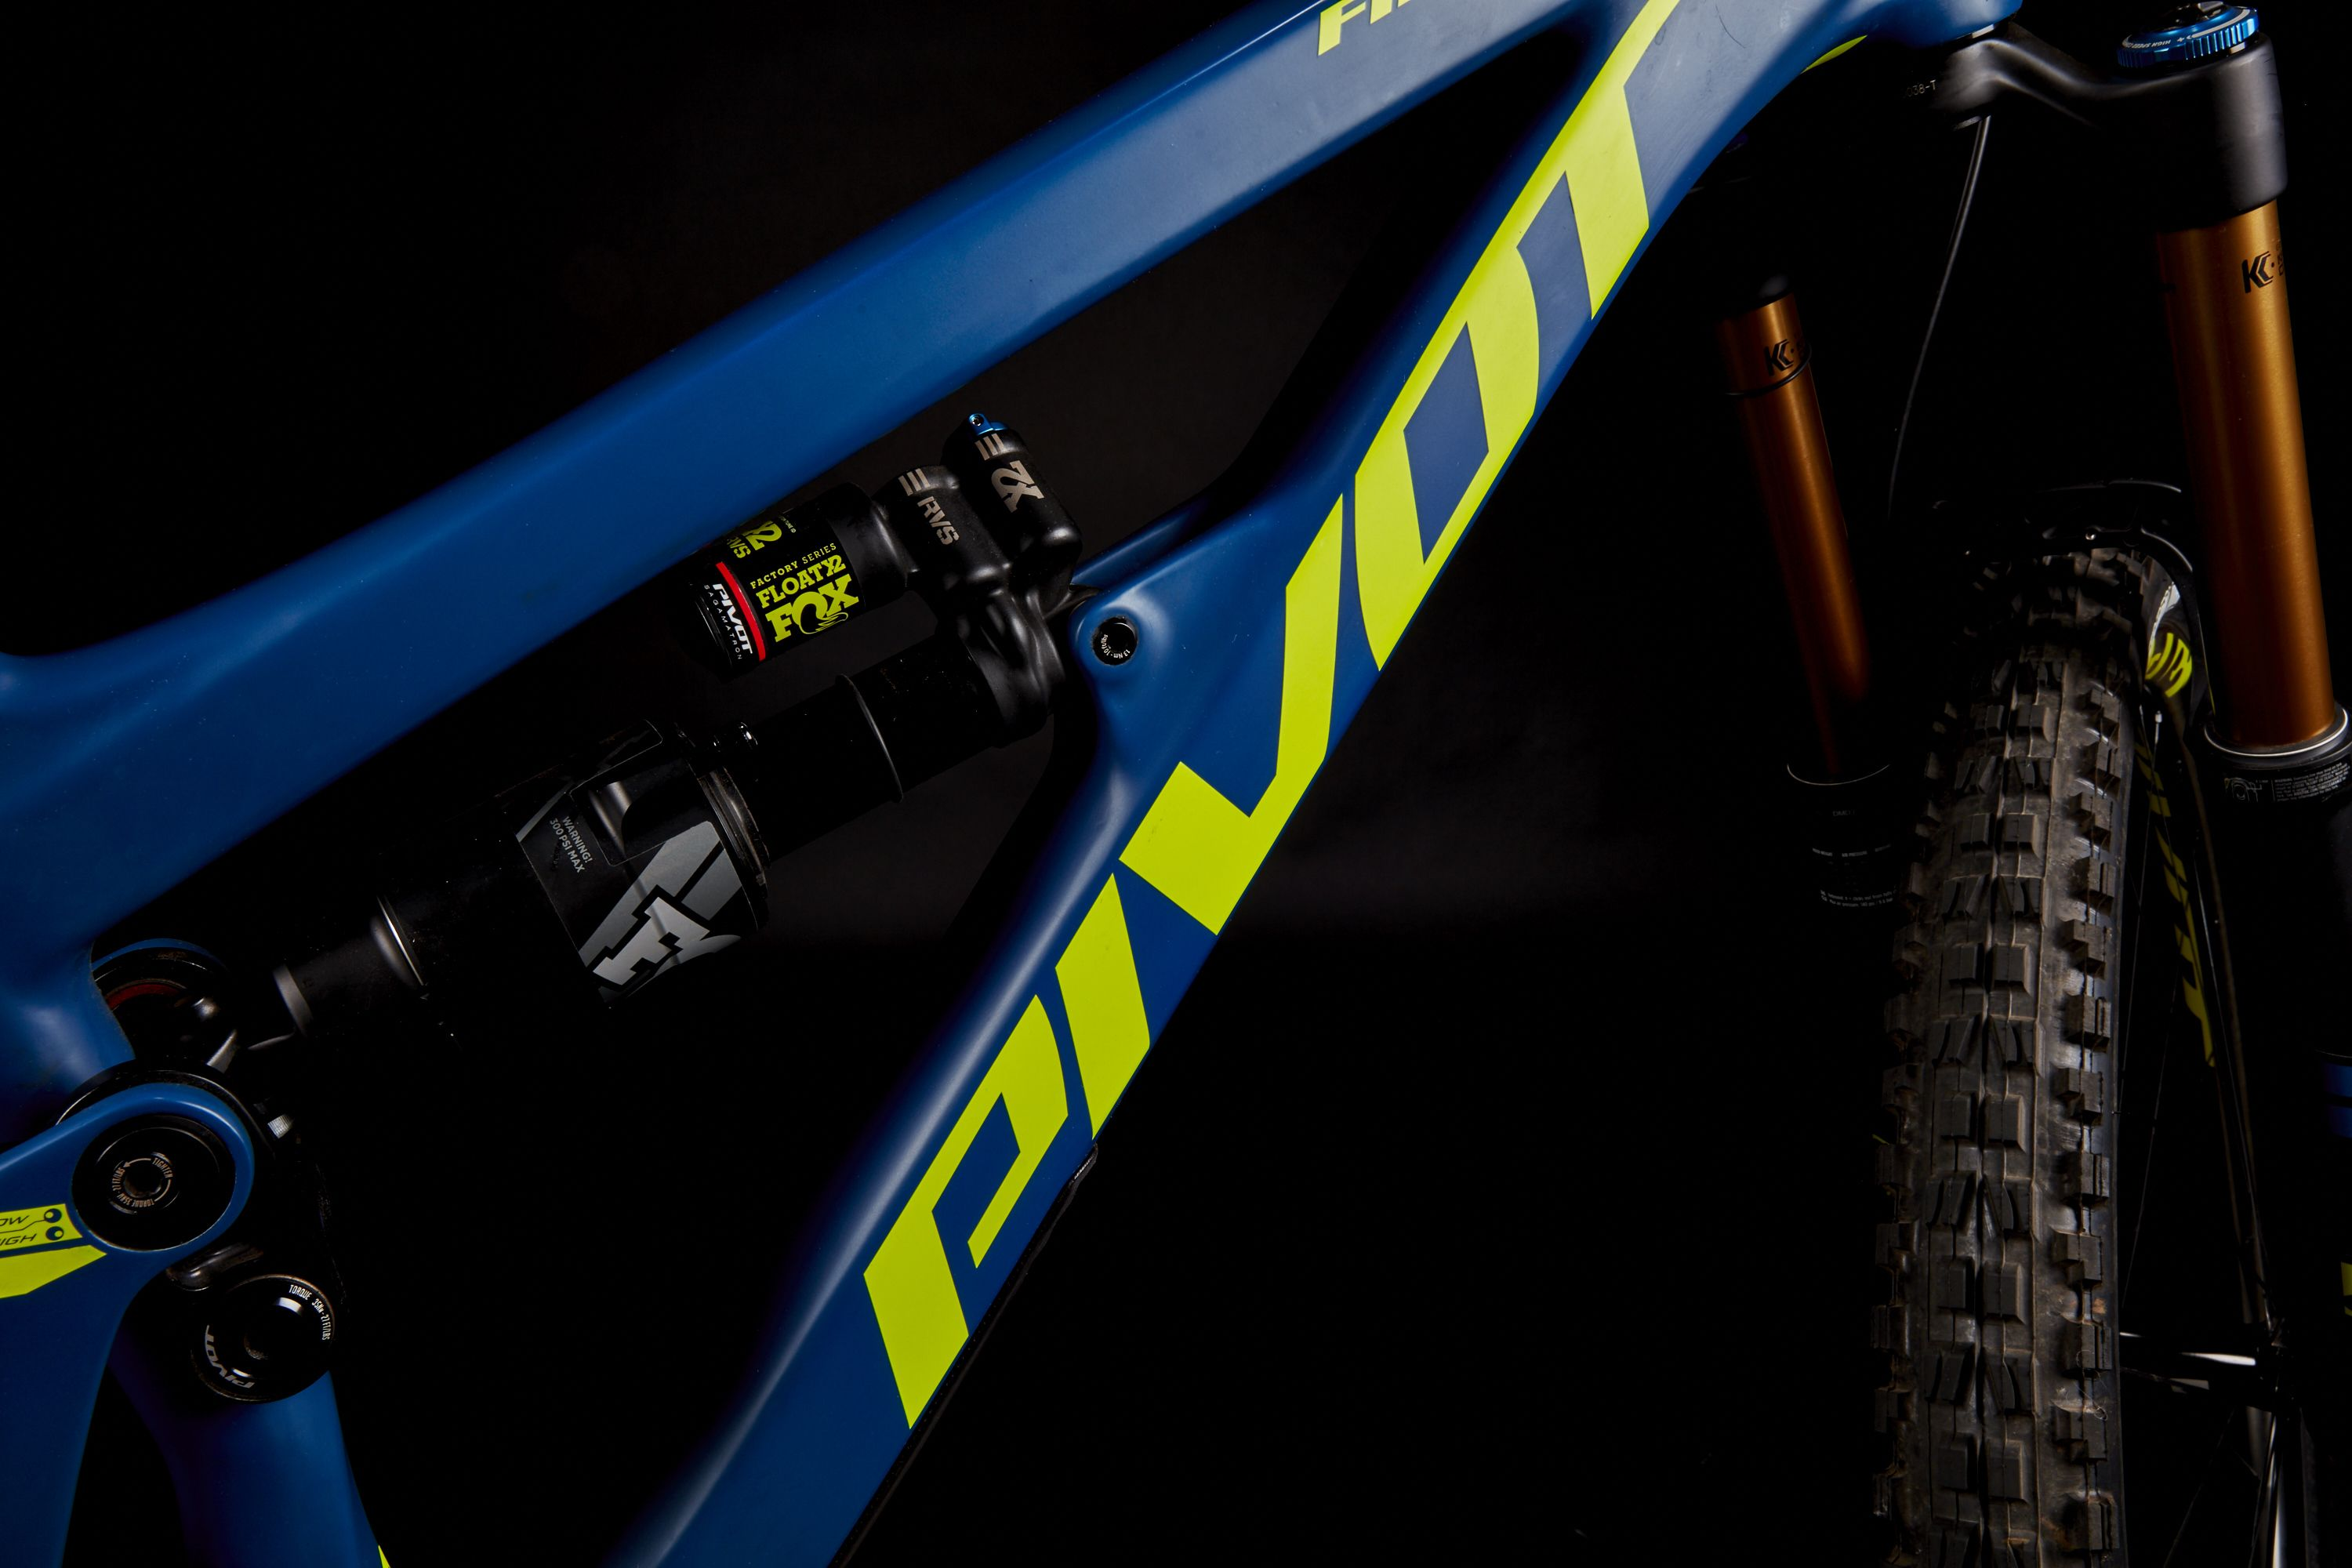 Best Pivot Bikes 2019 - Pivot Mountain Bike Reviews